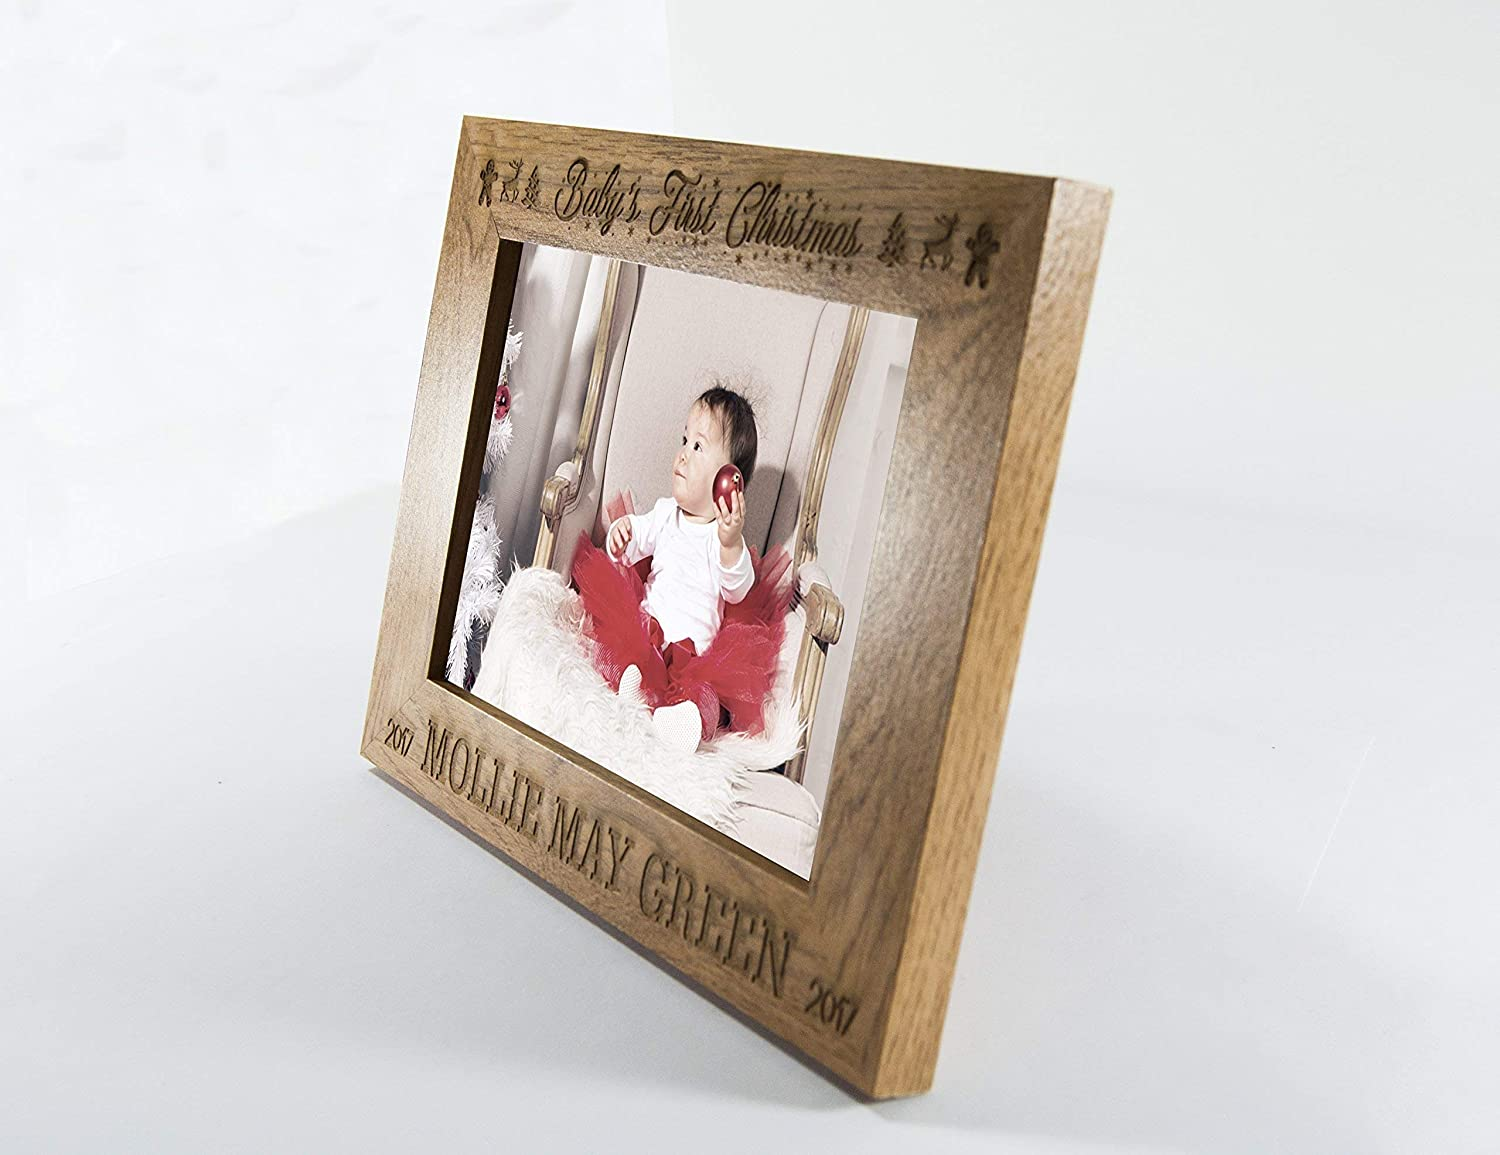 My First Christmas Personalised Engraved Wooden Photo Frame 5x7